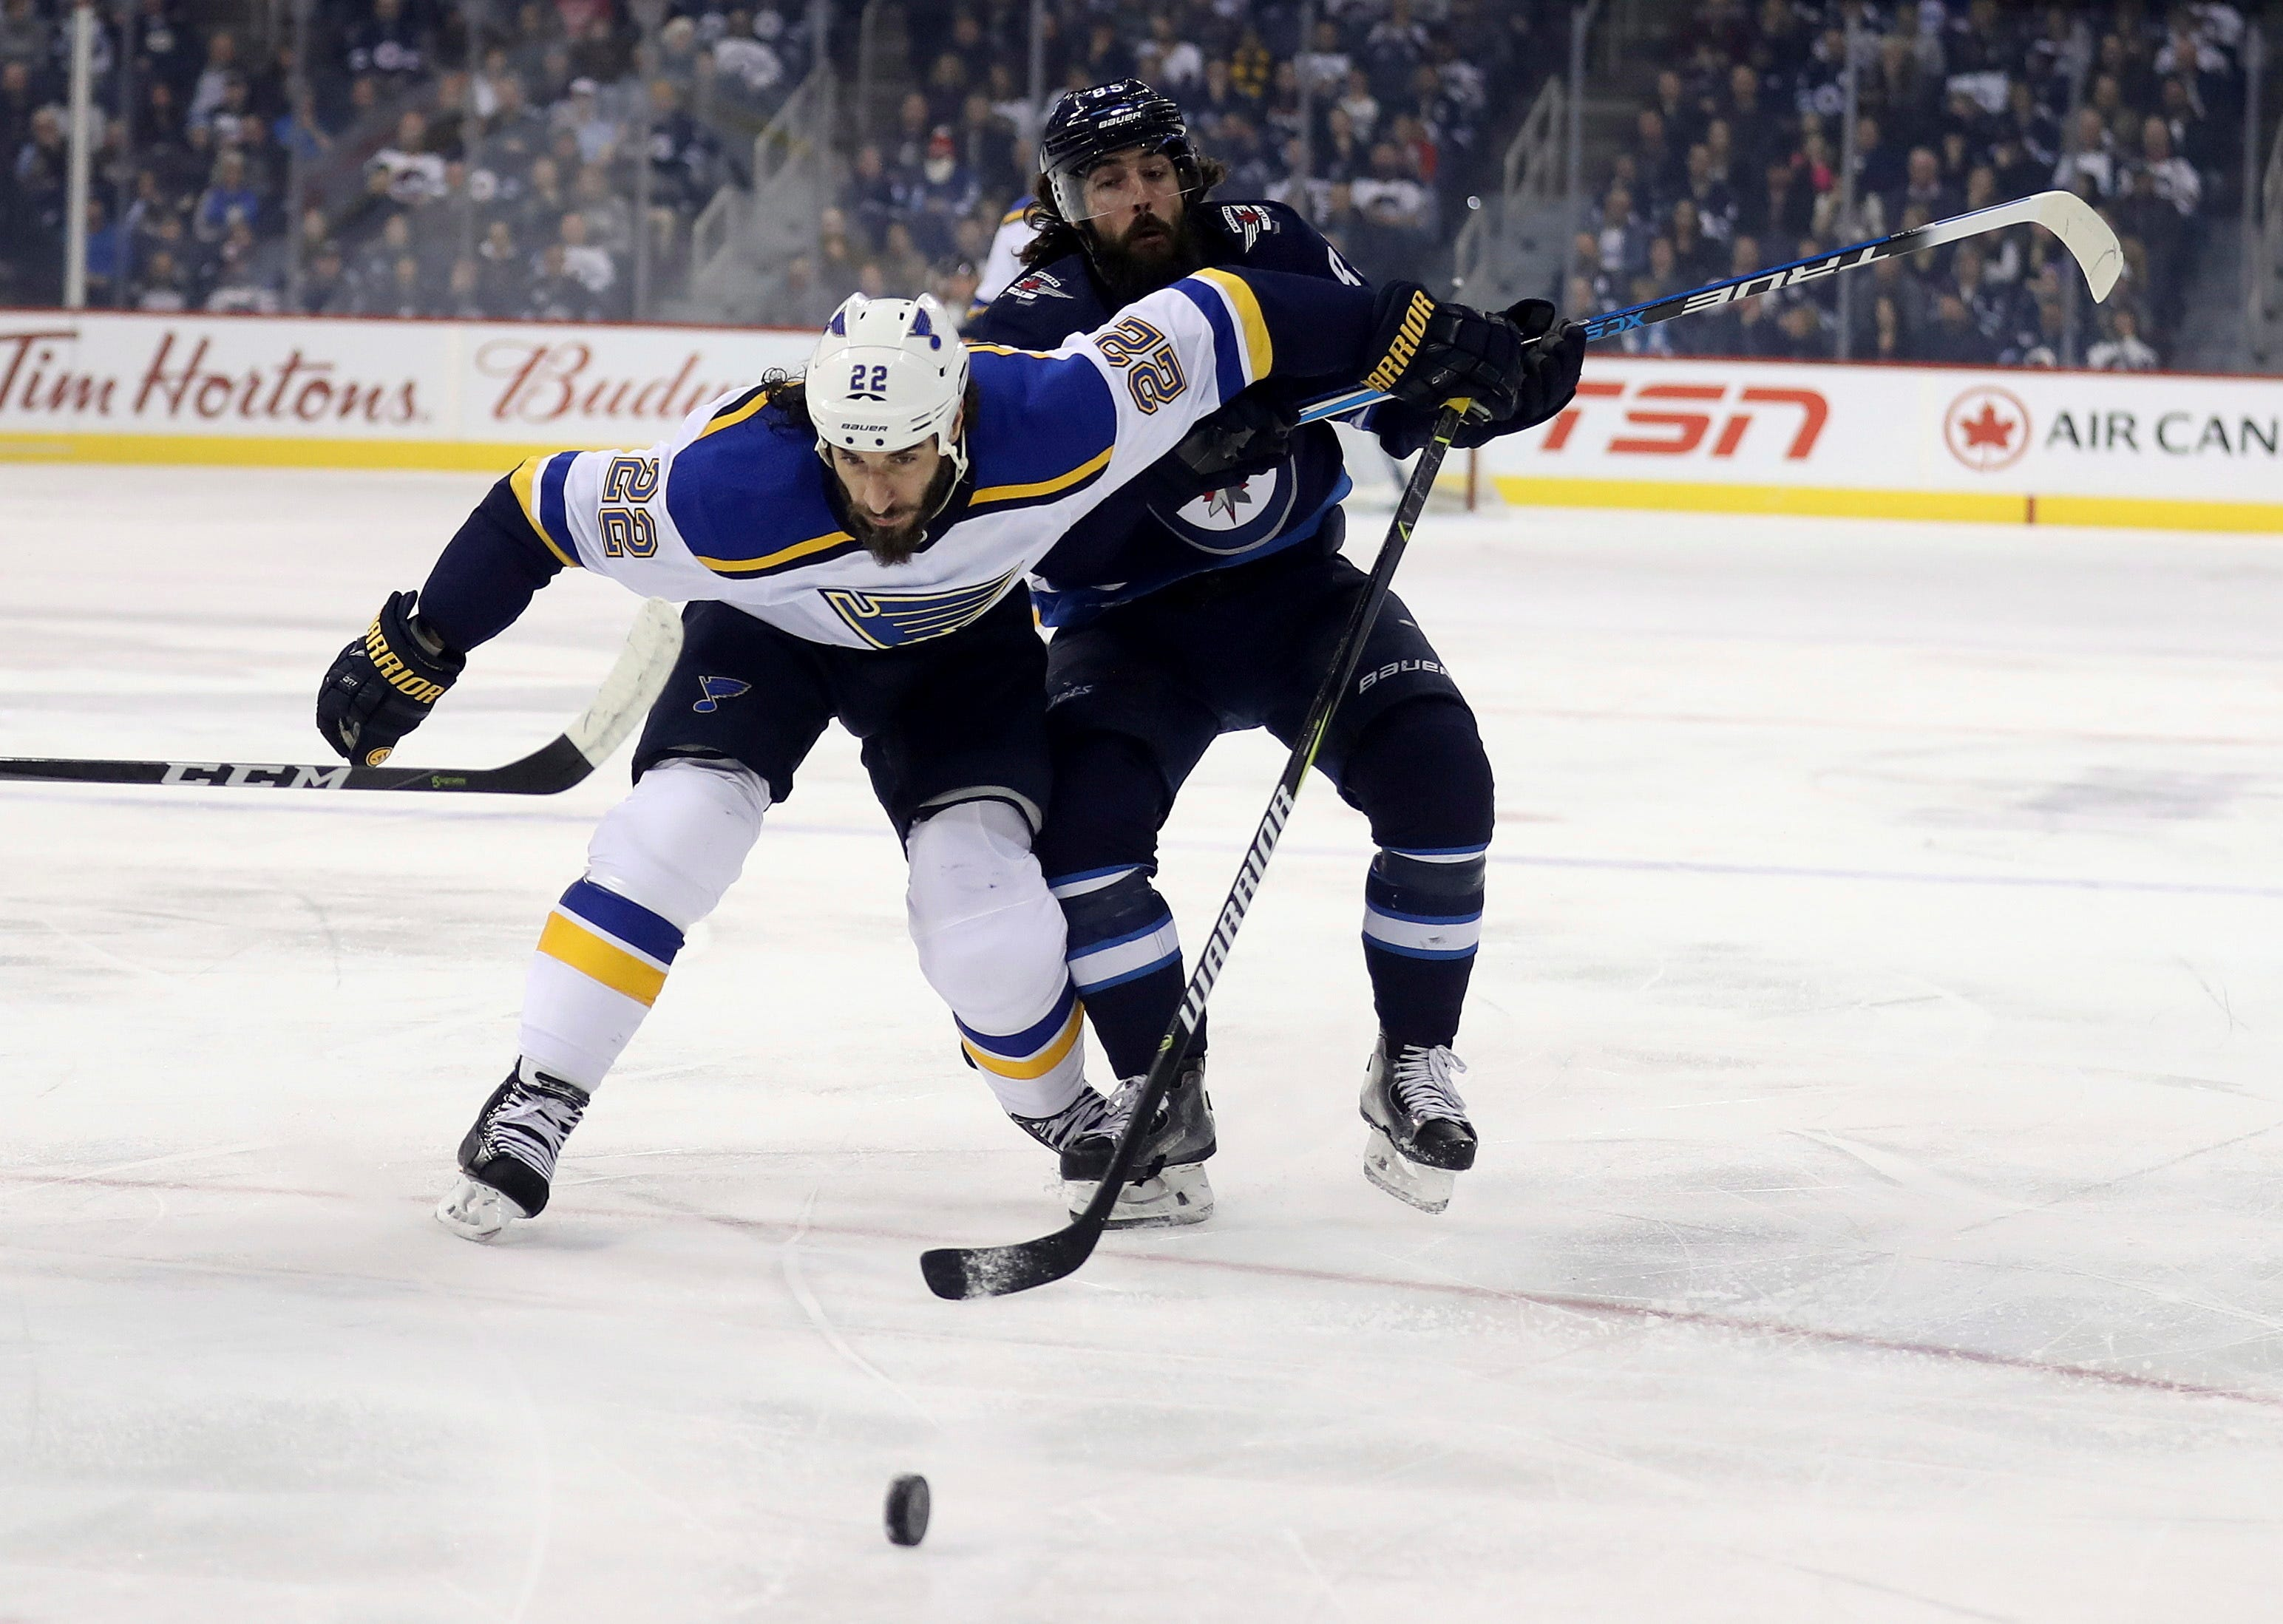 Hellebuyck stops 24 shots, Jets beat Blues 4-0